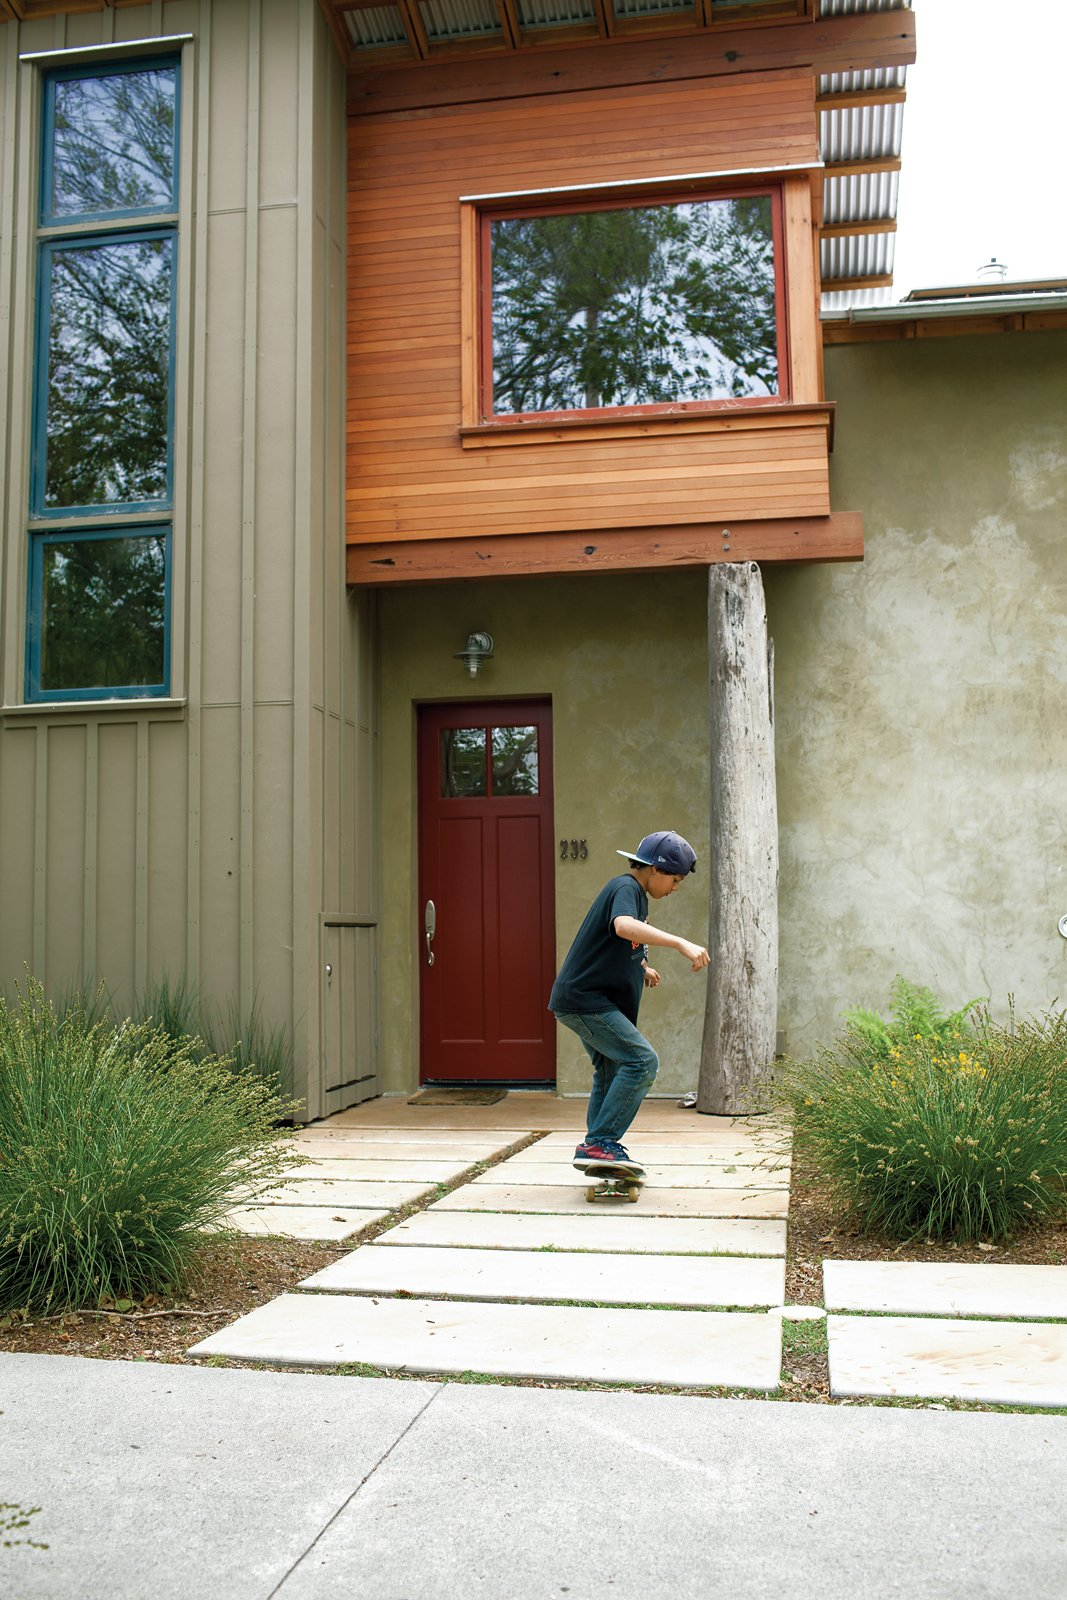 Outdoor, Shrubs, and Pavers Patio, Porch, Deck  Photo 5 of 8 in Green Zero-Energy Family Home in Santa Cruz